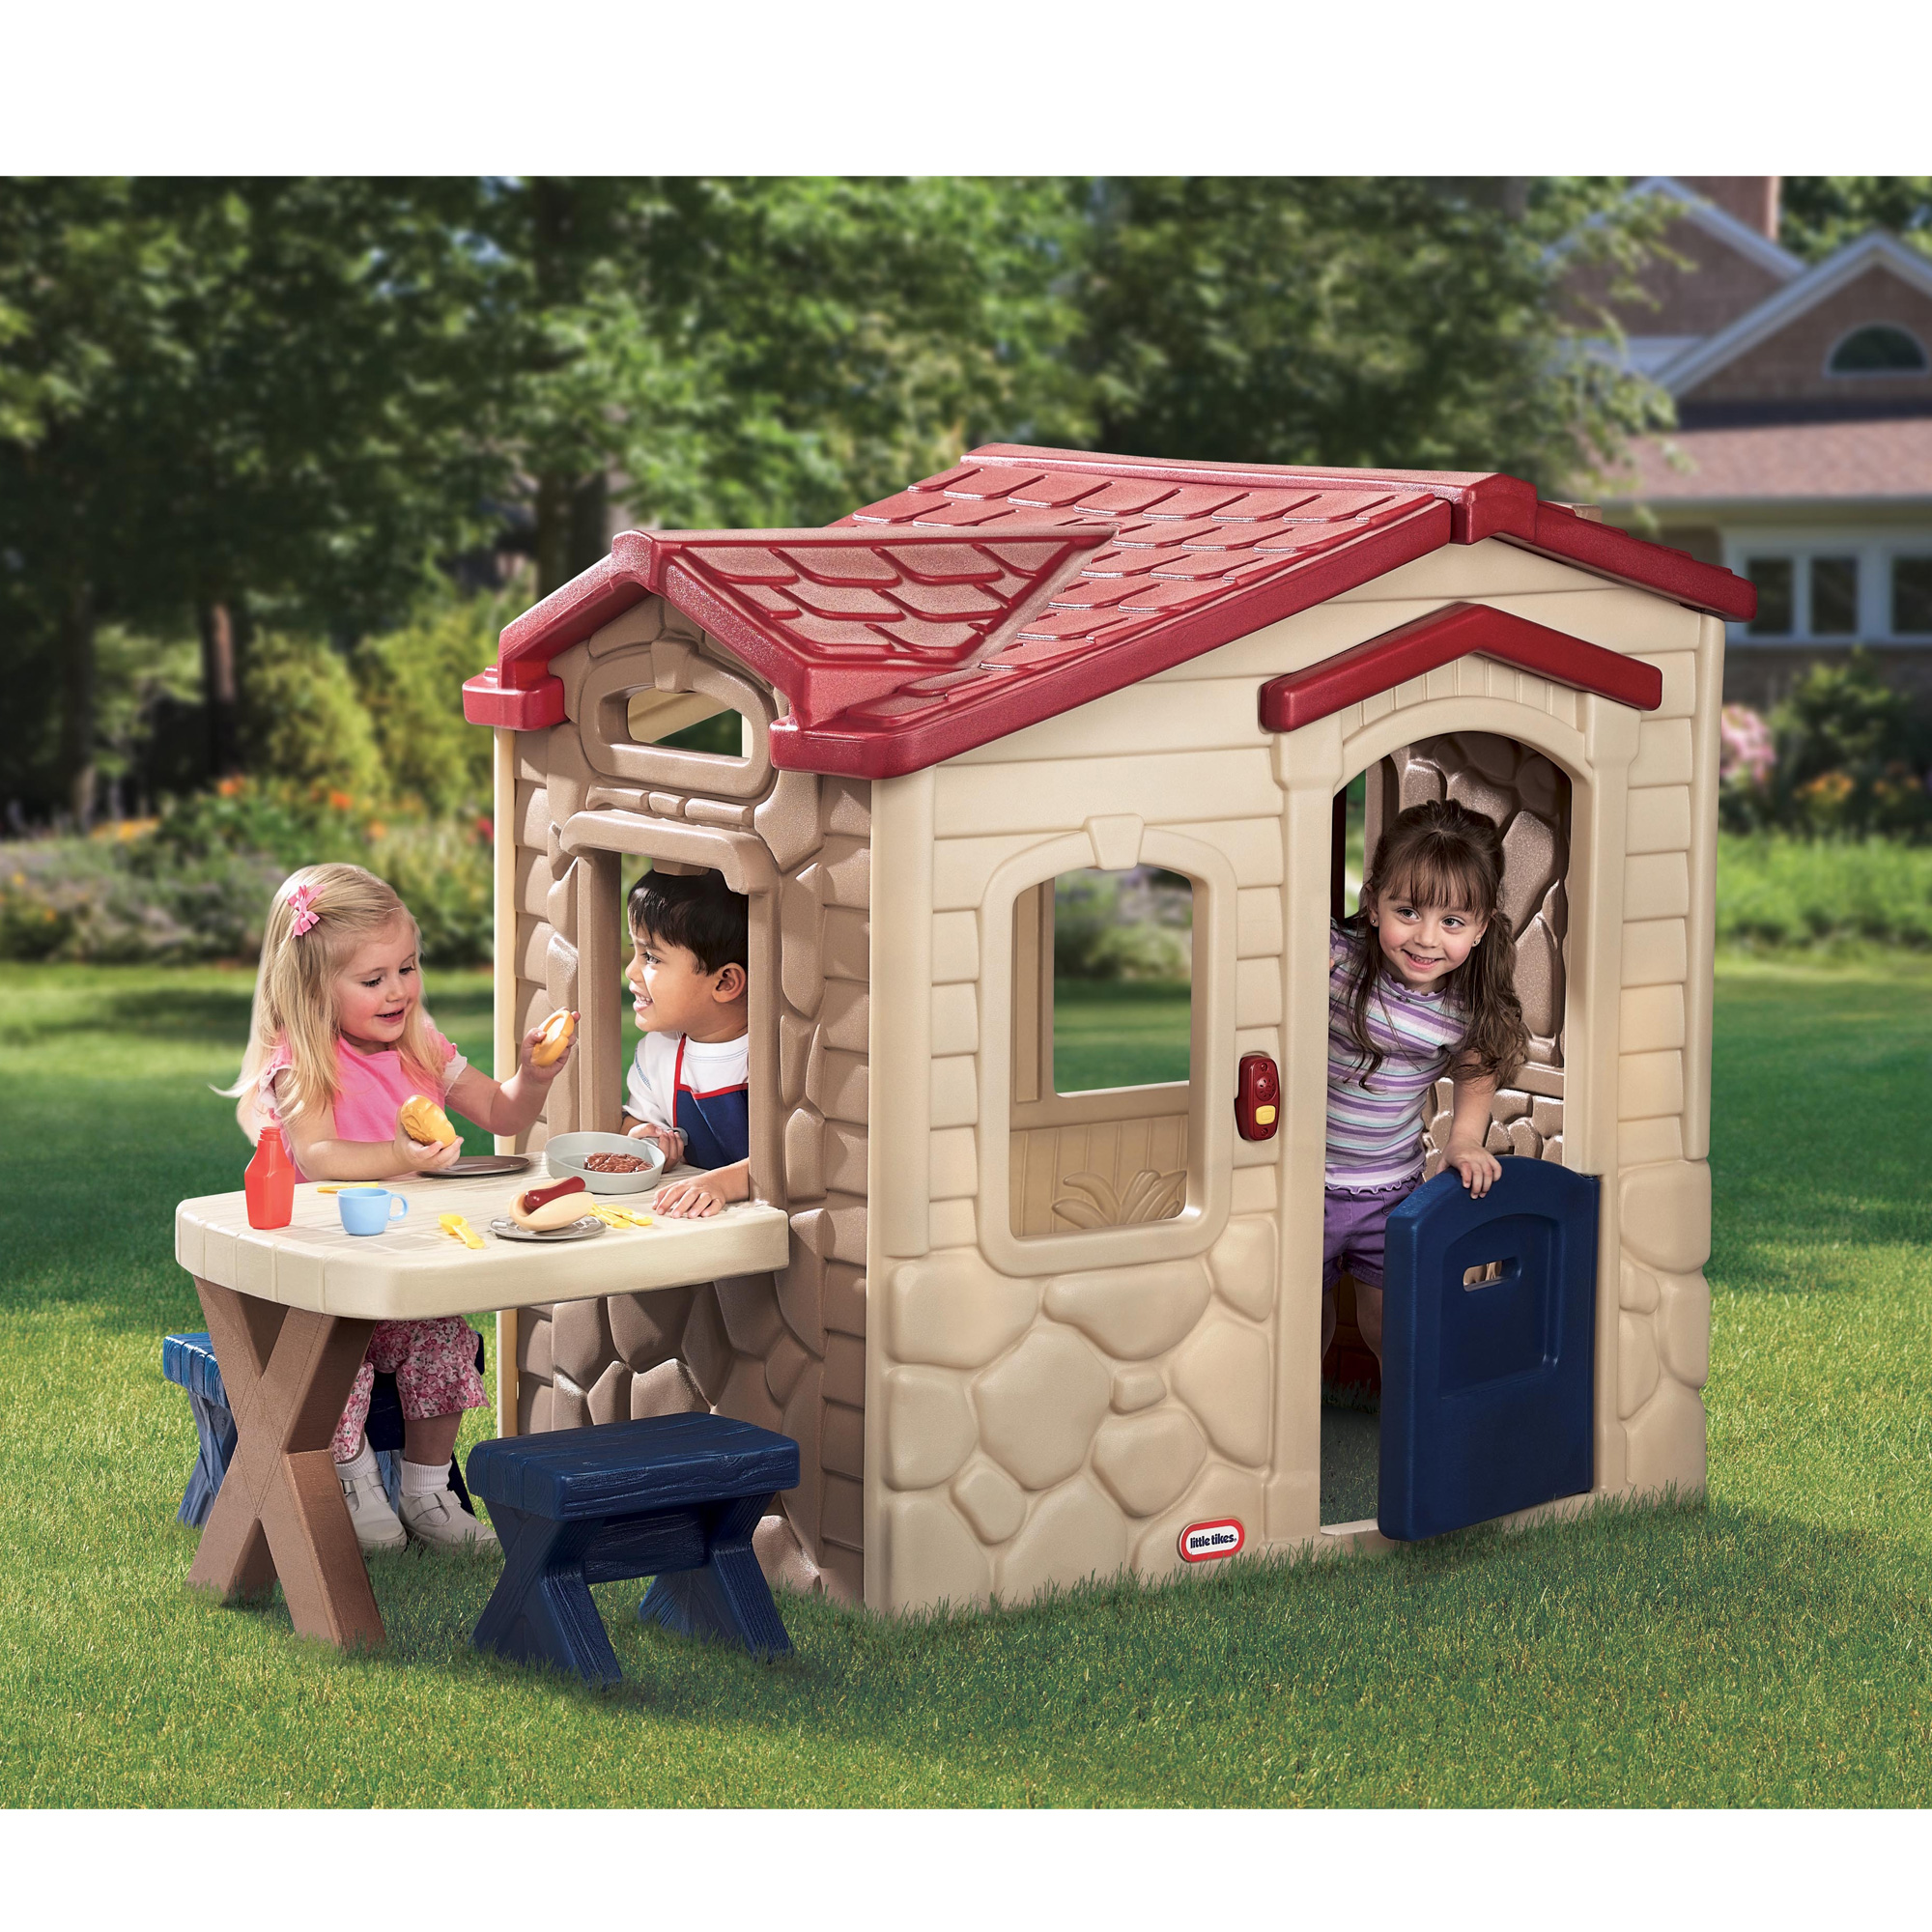 Little Tikes Picnic On The Patio Playhouse - Cream - Baby  Birthday Your Baby Gifts - Girls - 6-12 months